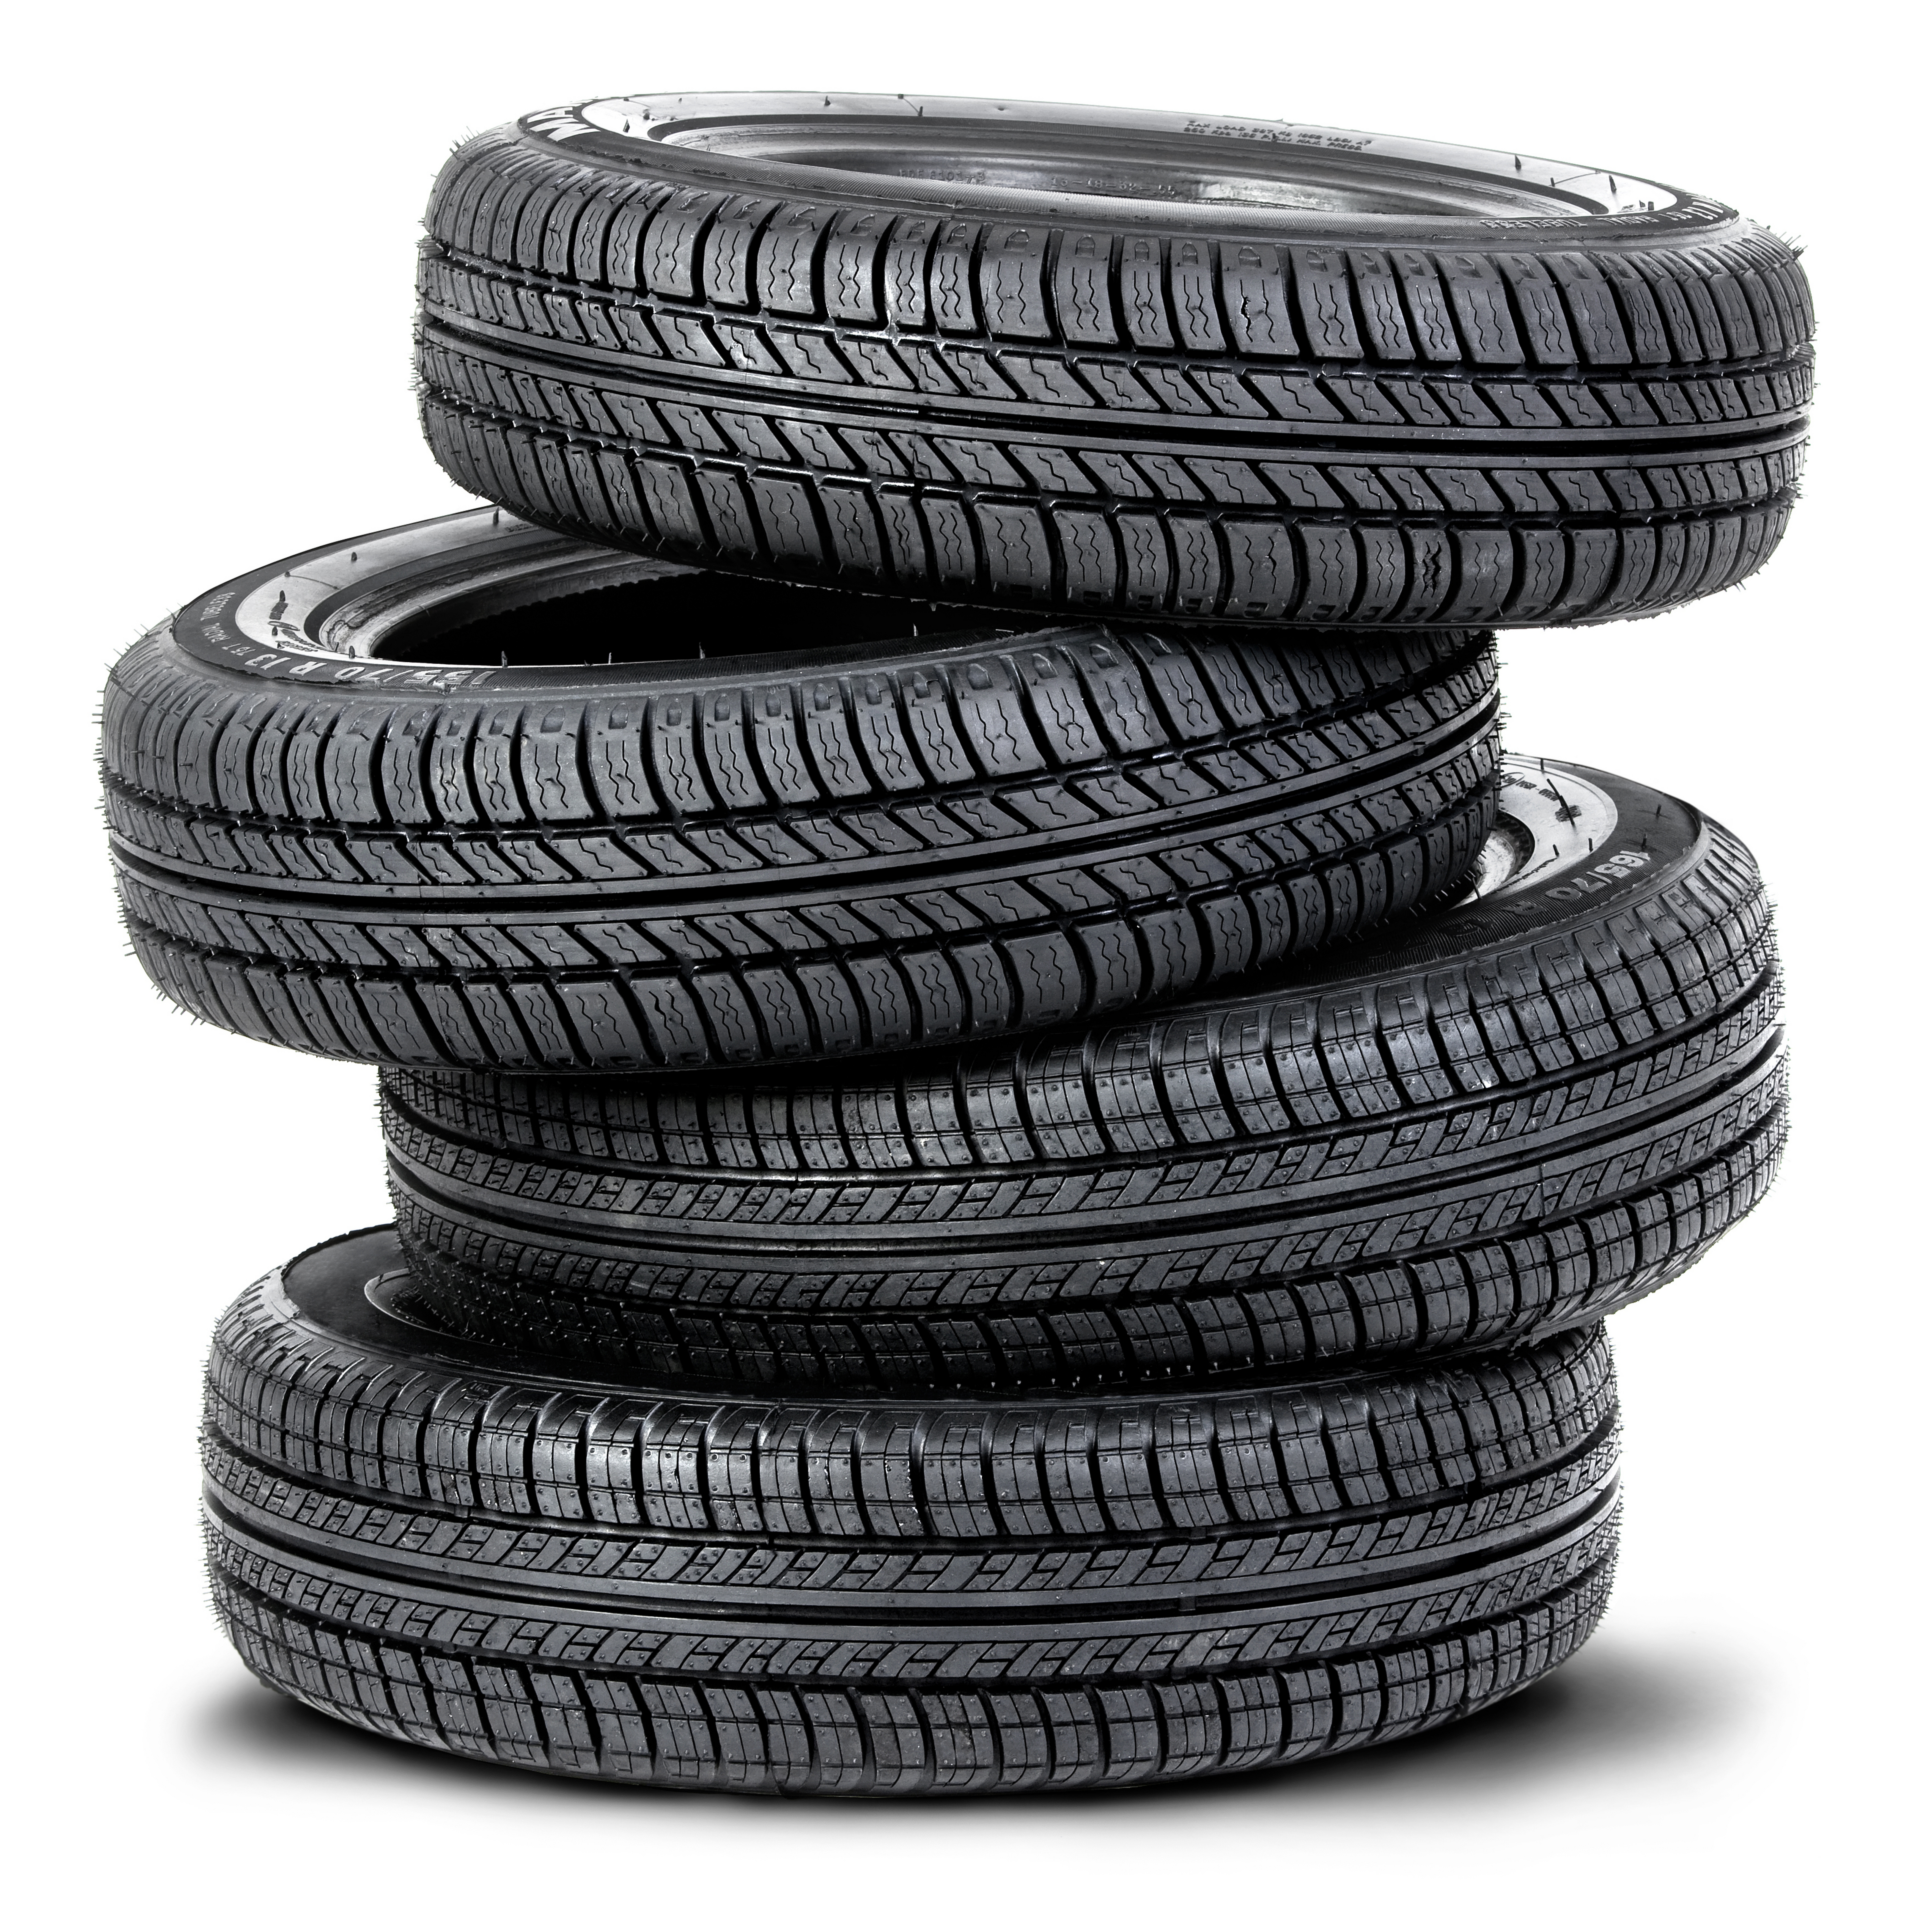 268 Tires free clipart.